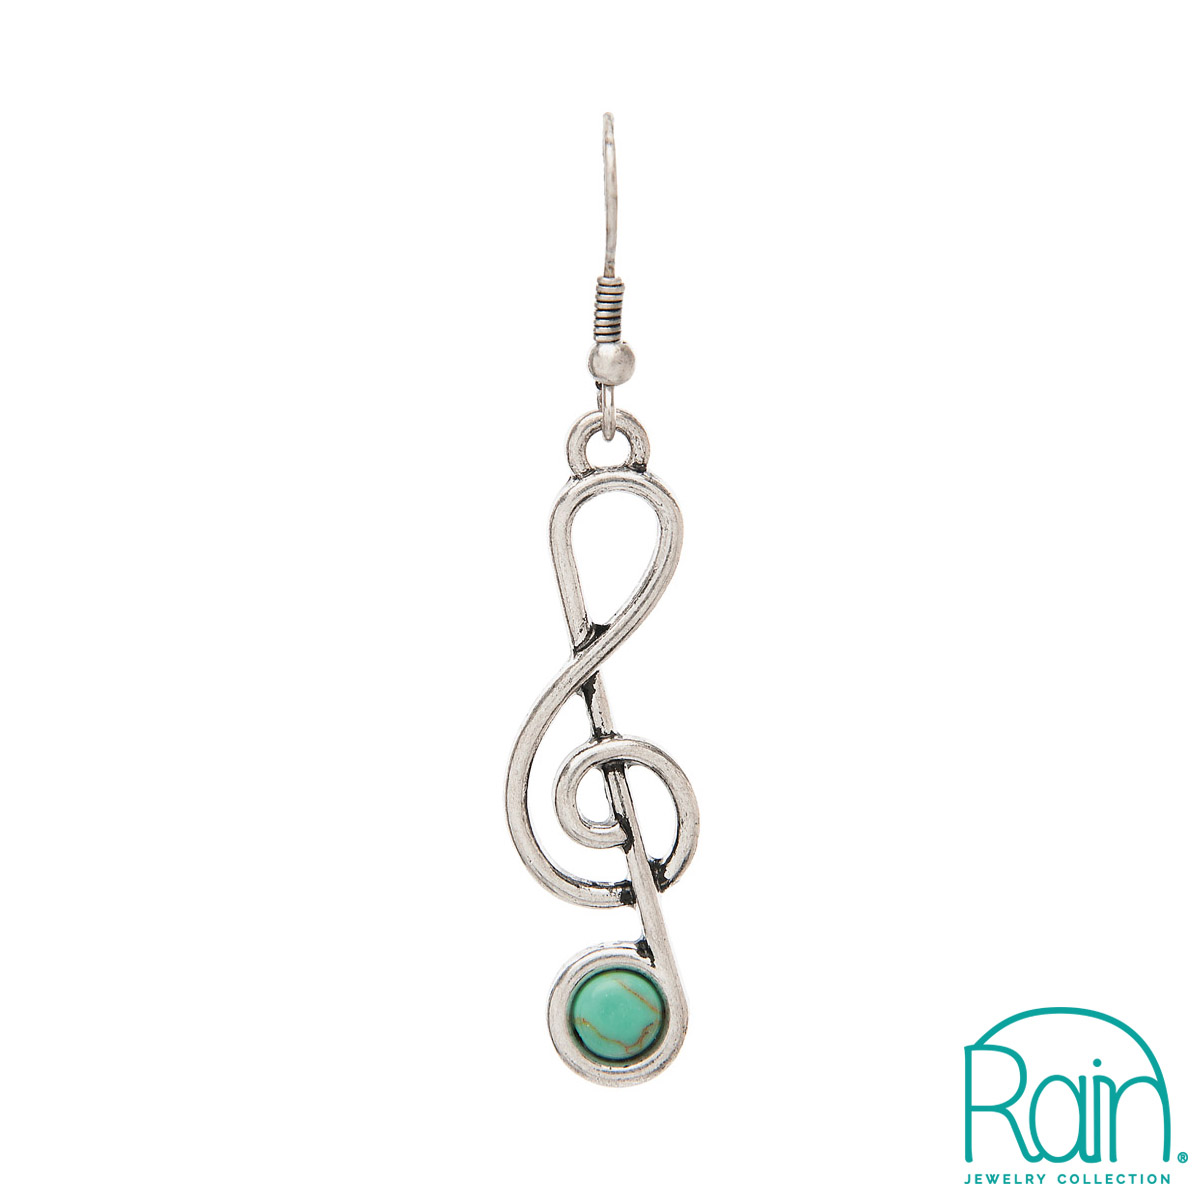 Treble Clef Earrings - Turquoise-0